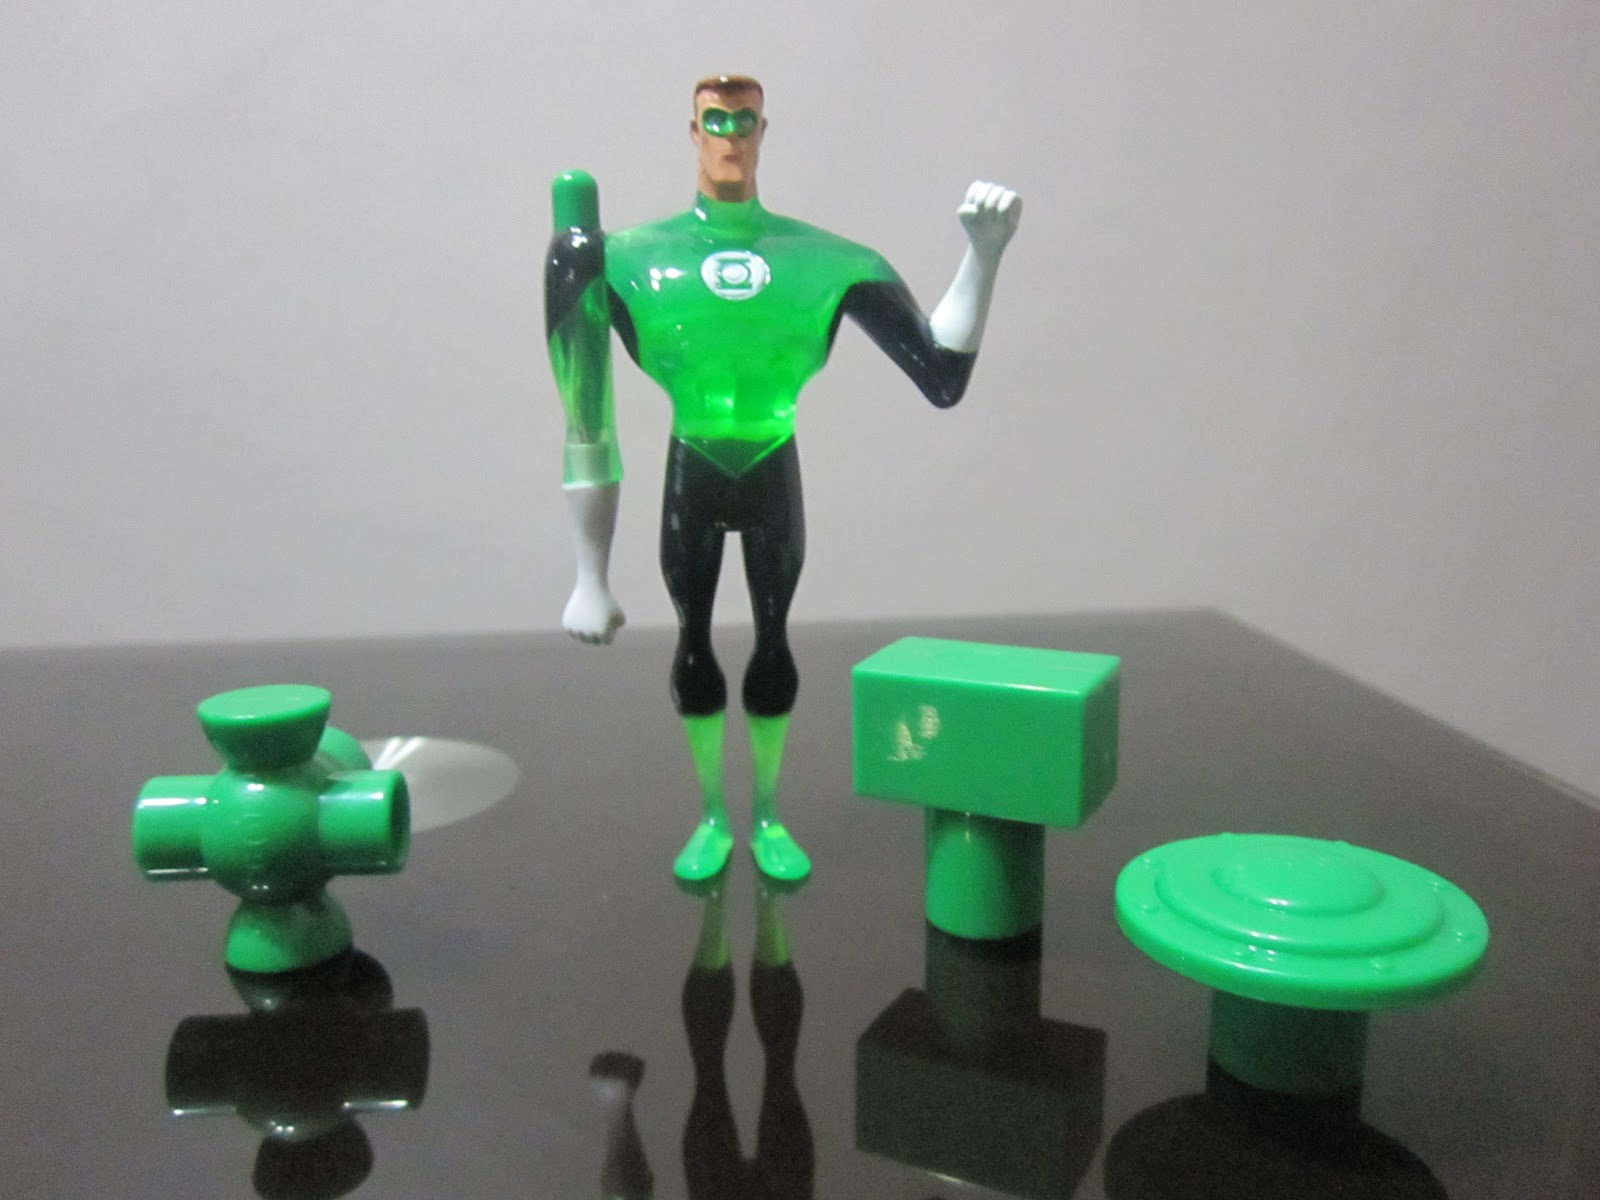 Calex Lampen Action : Jollibee kiddie meal green lantern toy review action figure planet